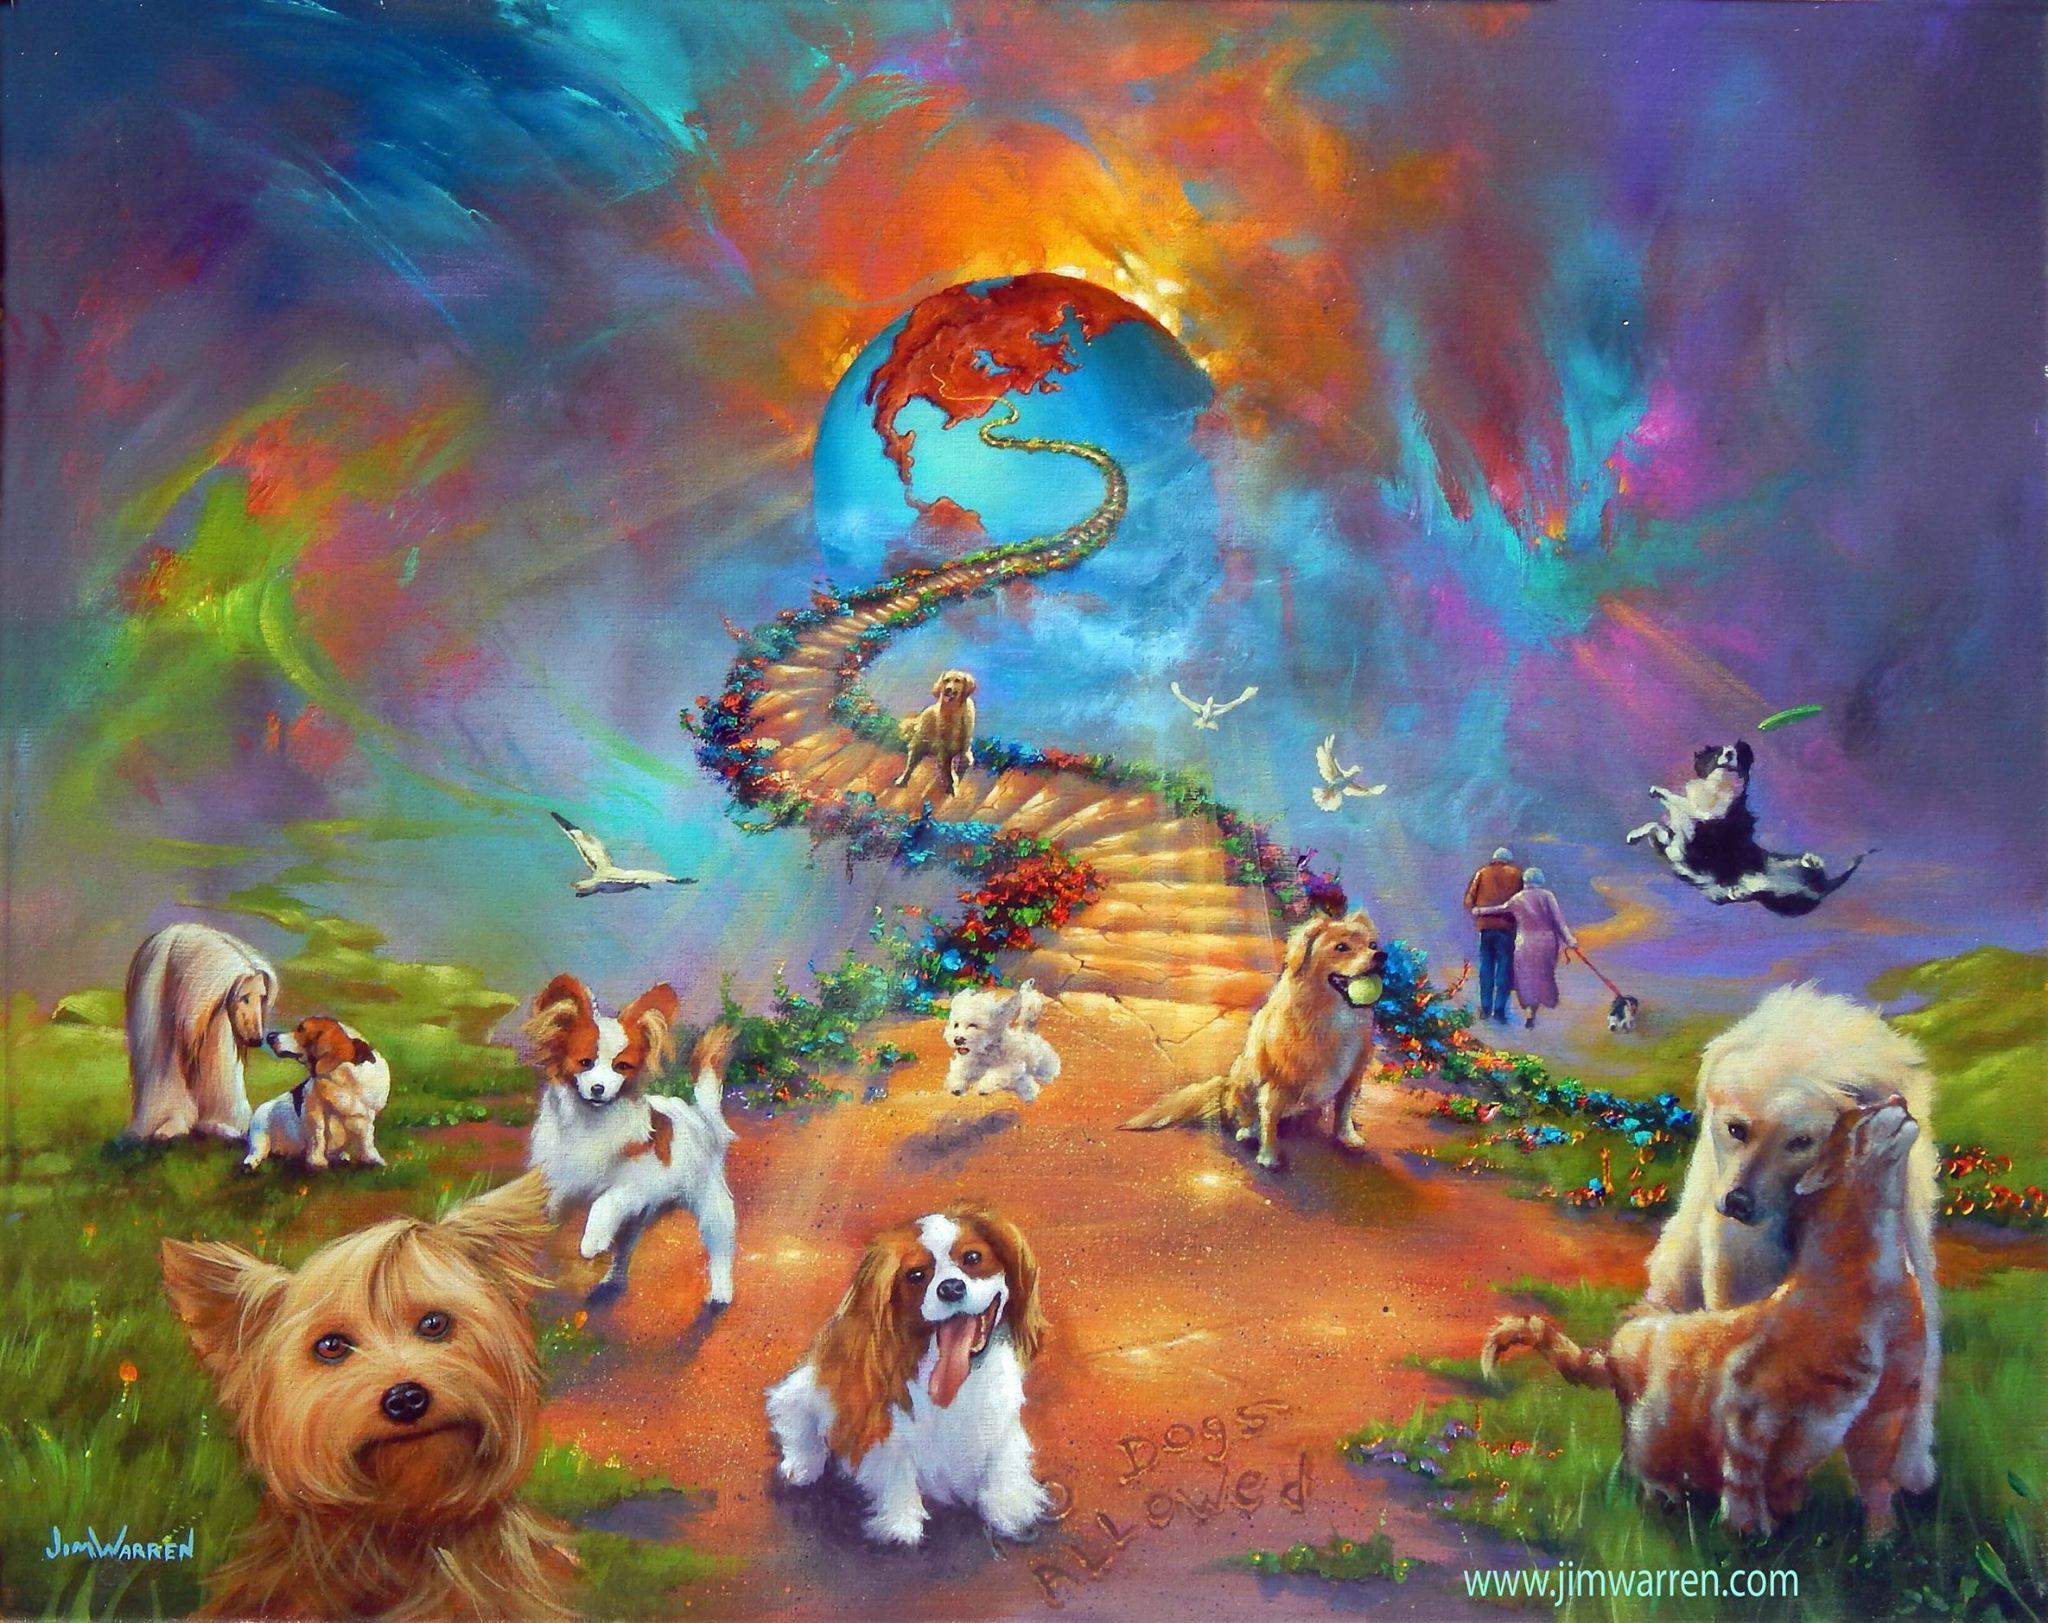 All Dogs go to heaven 4 Cross paintings, 8x10 art prints